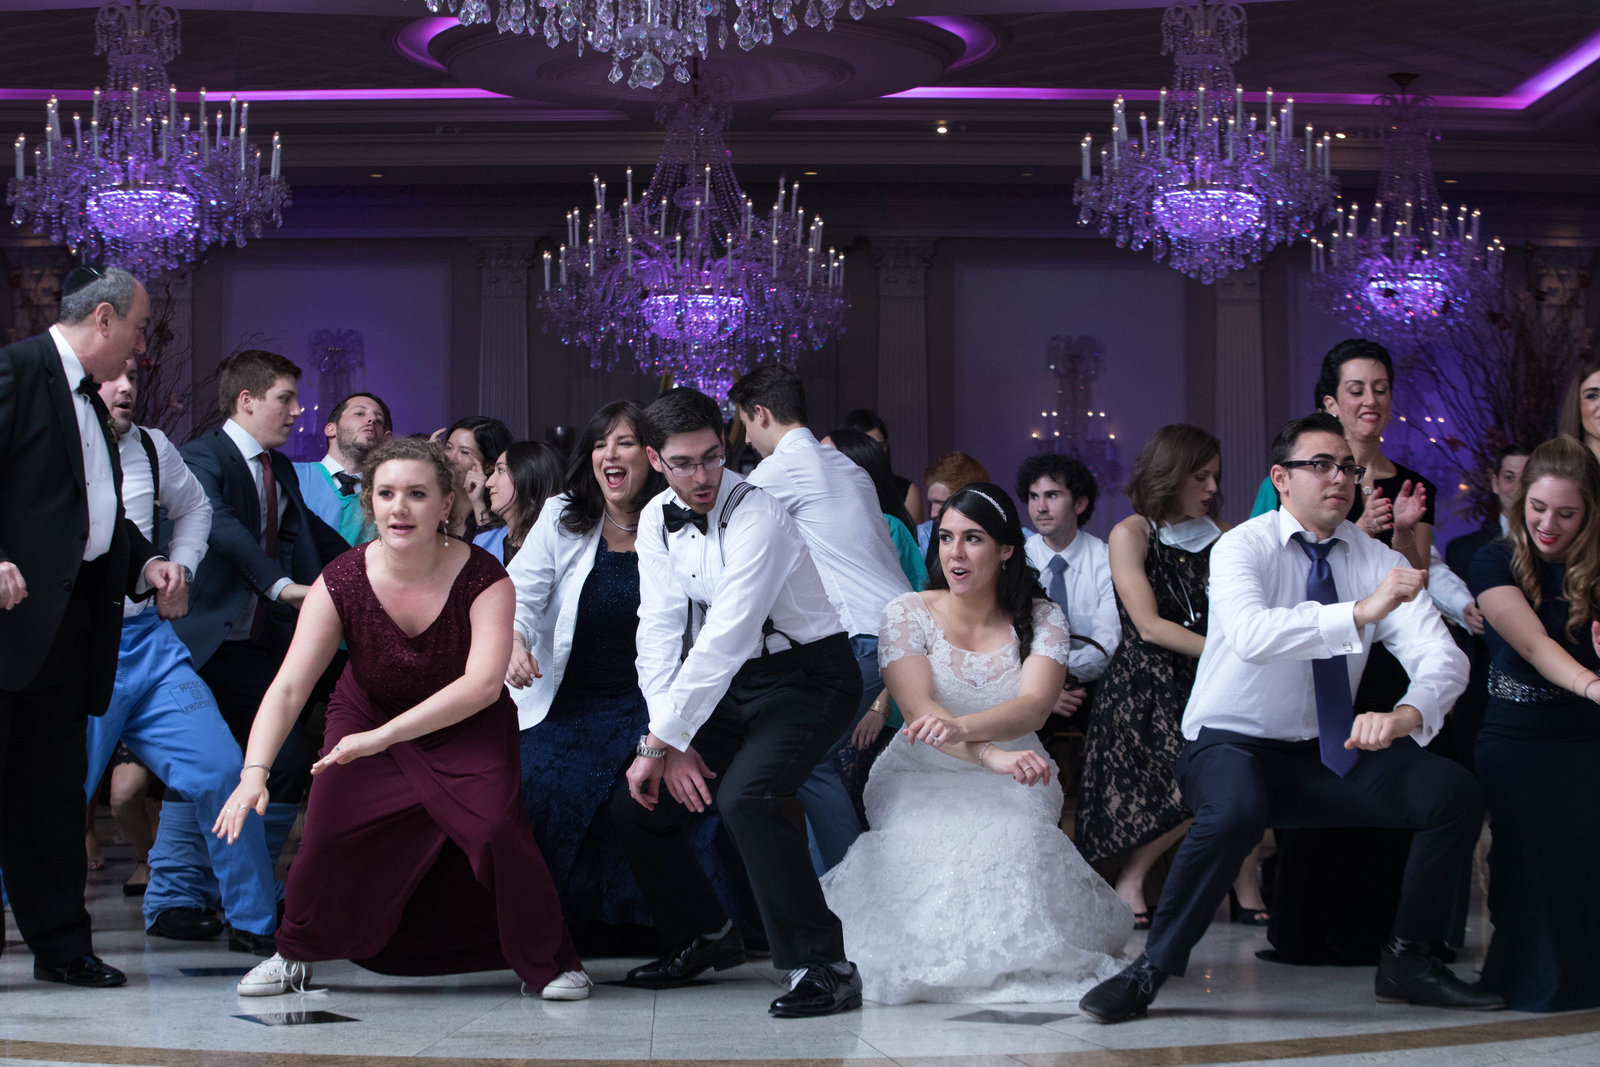 Jewish-Rockleigh-Country Club-NJ-Wedding-Photographer-Laibel Schwartz Photography-Photo-2